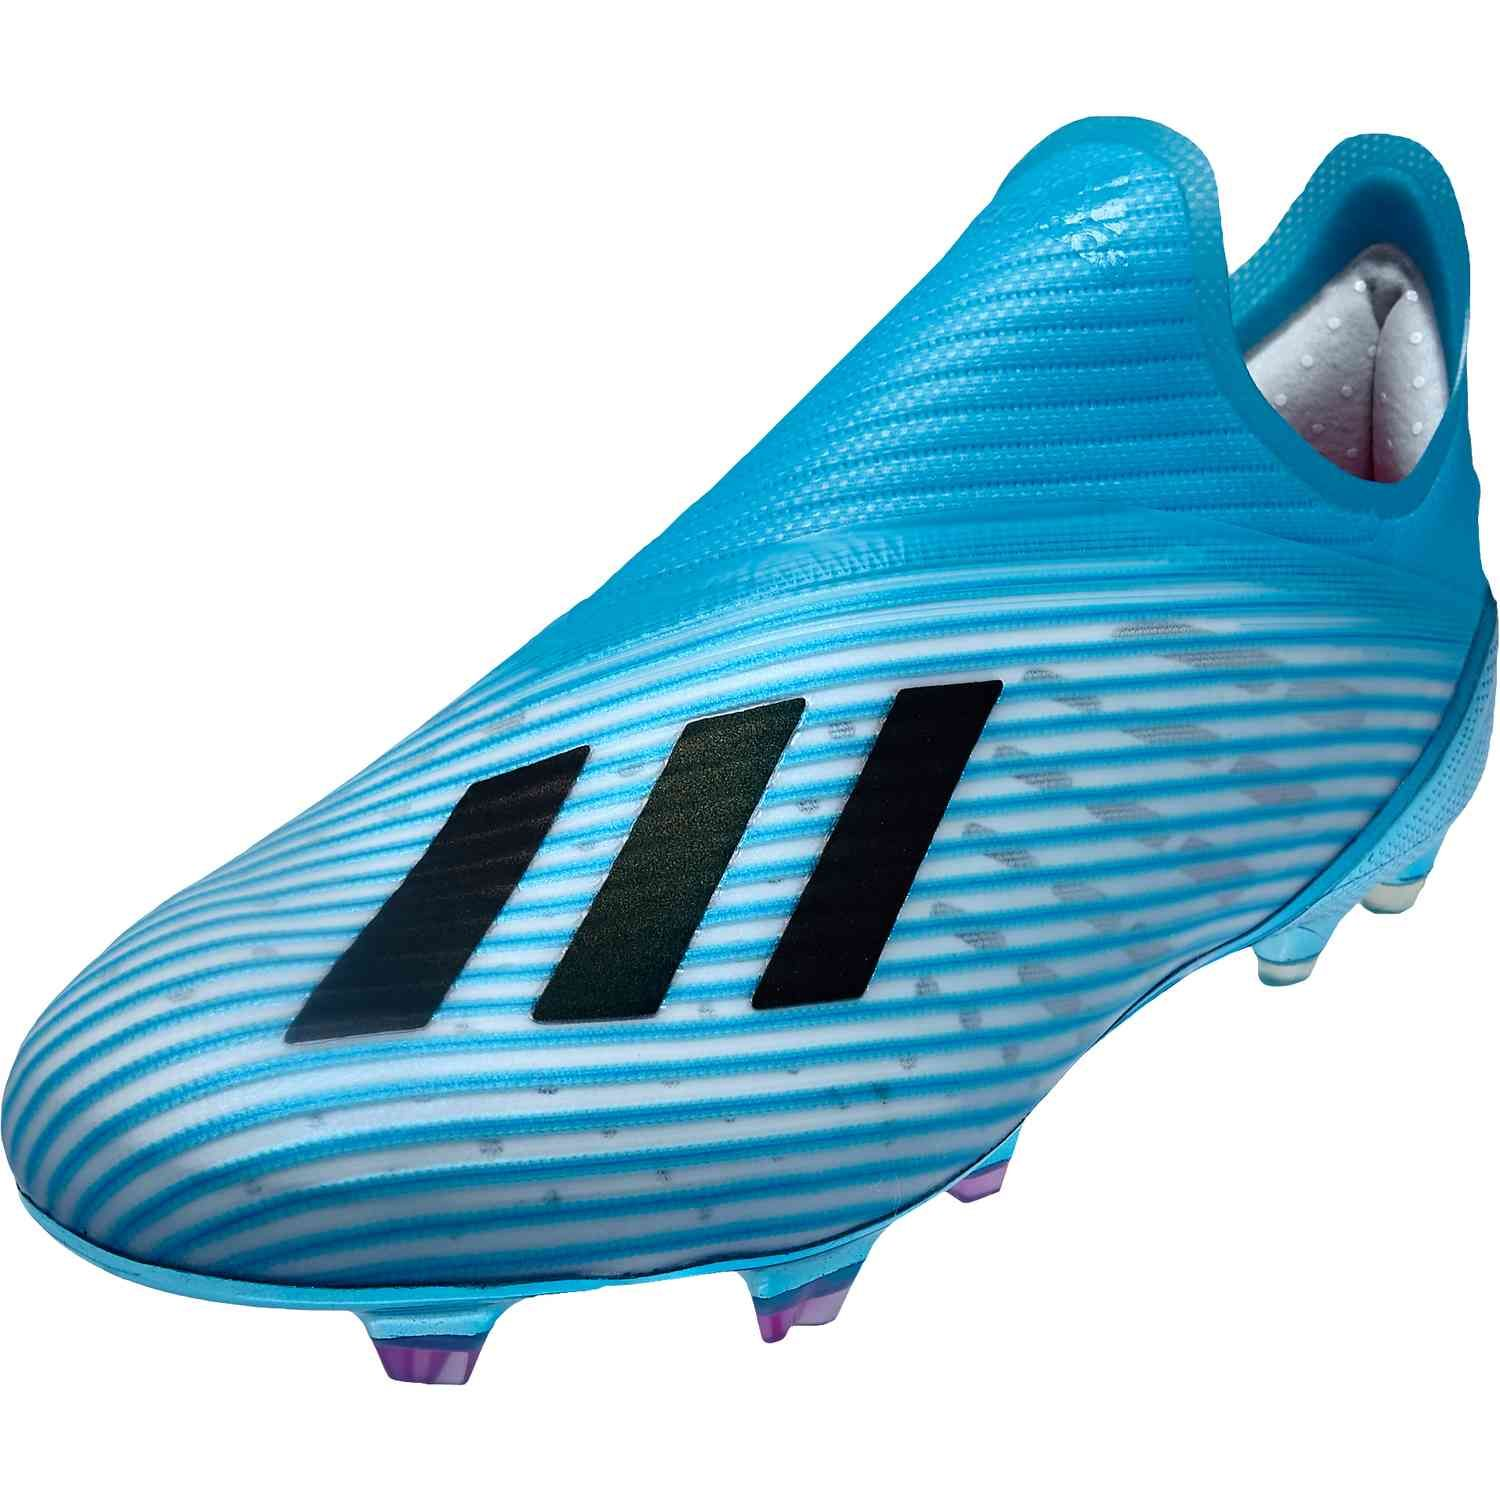 Adidas X 19 Fg Hard Wired Soccerpro Soccer Shoes Soccer Cleats Adidas